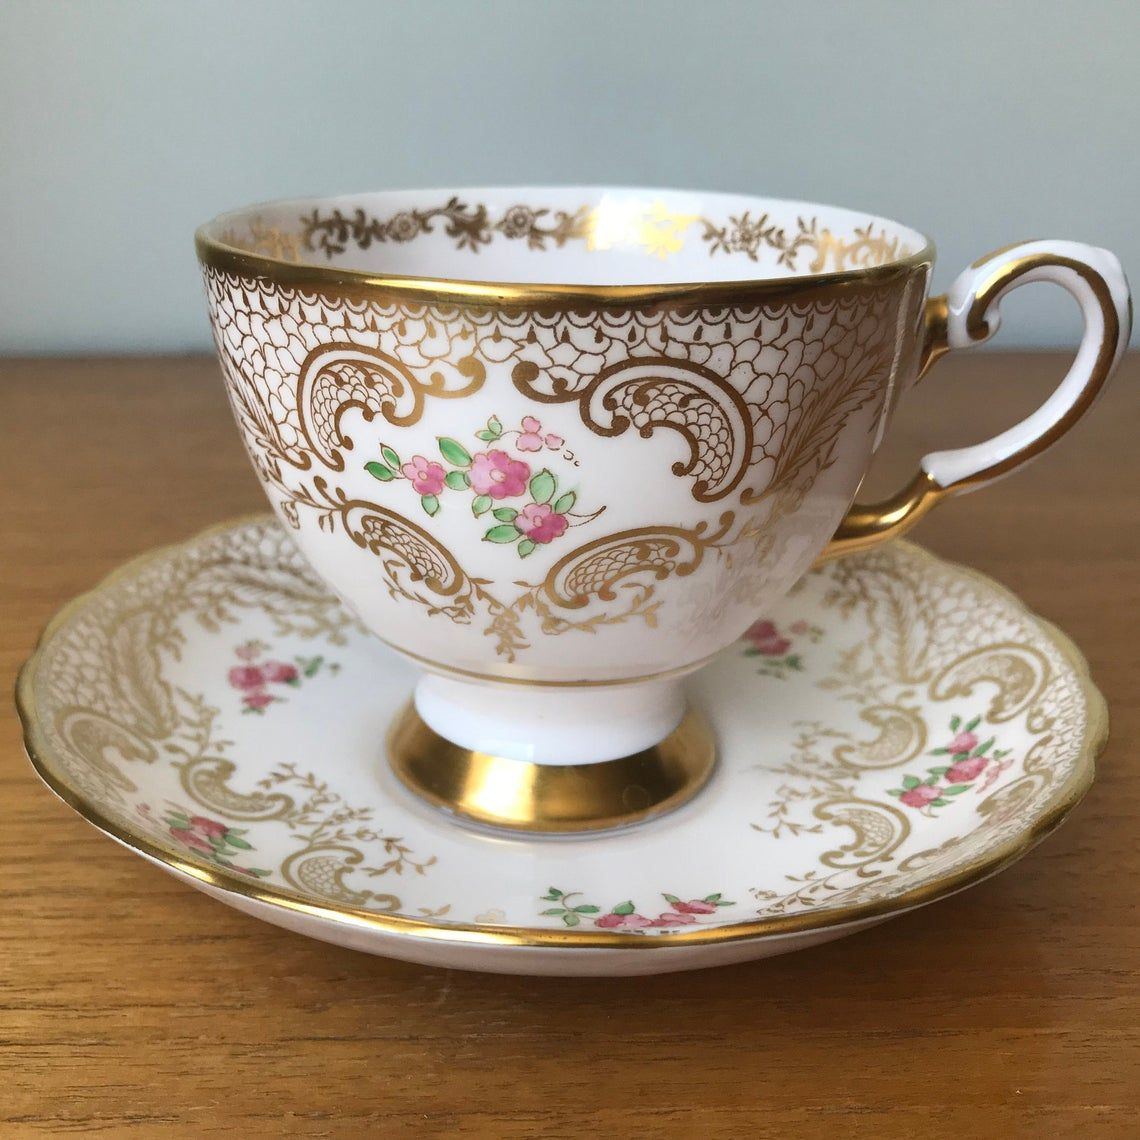 Tuscan China Teacup and Saucer, Pastel Pink Teacup and Saucer with Gold Lace Overlay with Hand Painted Flowers, Bone China